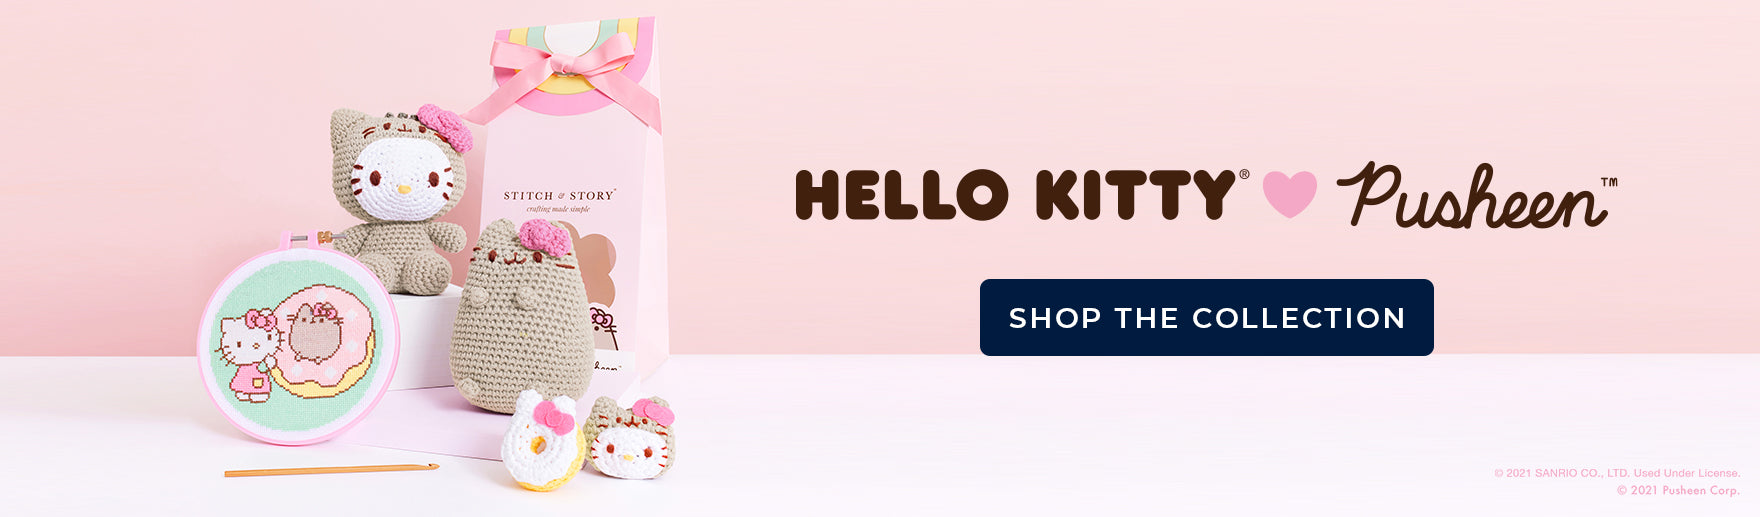 Shop the Hello Kitty and Pusheen collection of craft kits and accessories at Stitch & Story